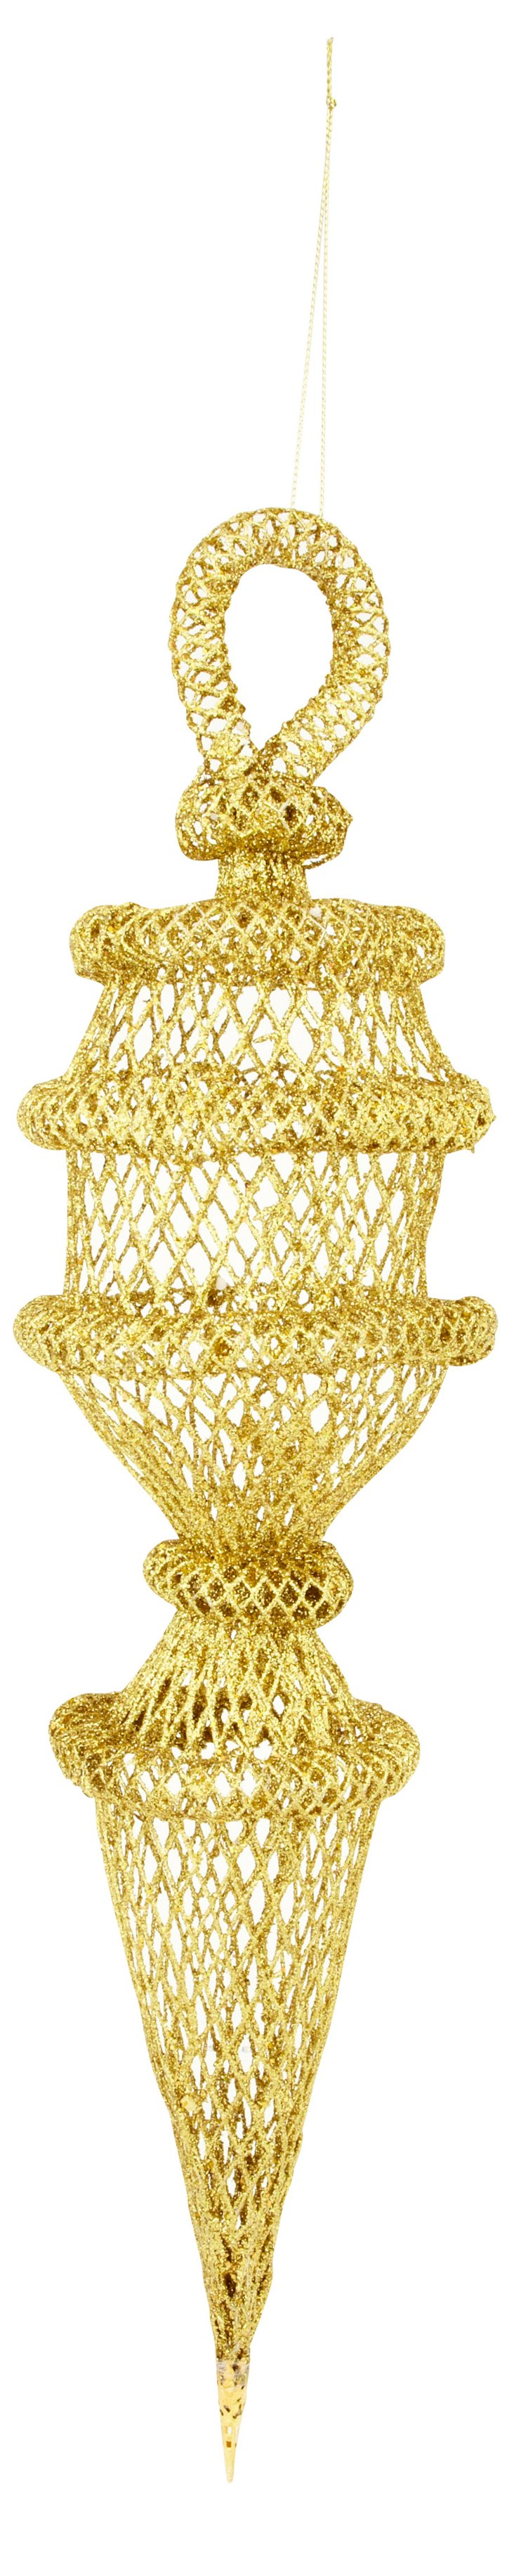 Long Mesh Ornament, Gold